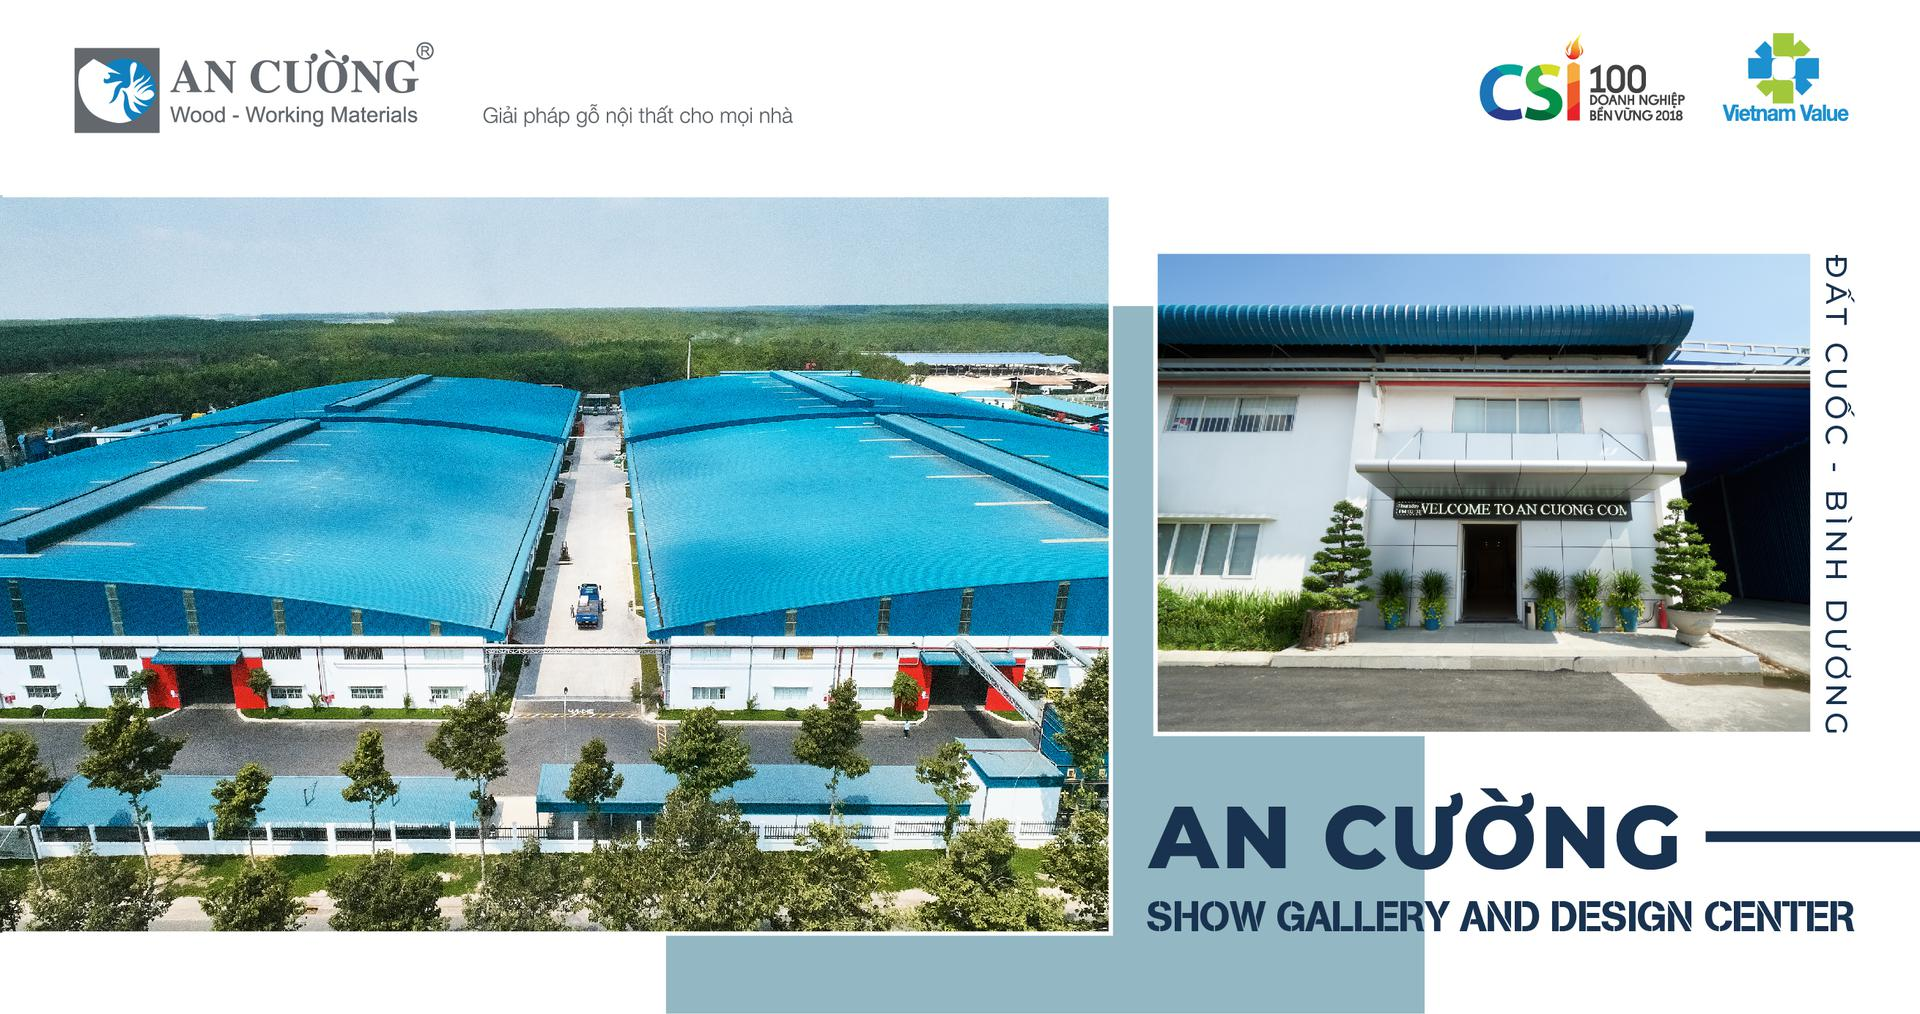 NEW SHOW GALLERY AND DESIGN CENTER